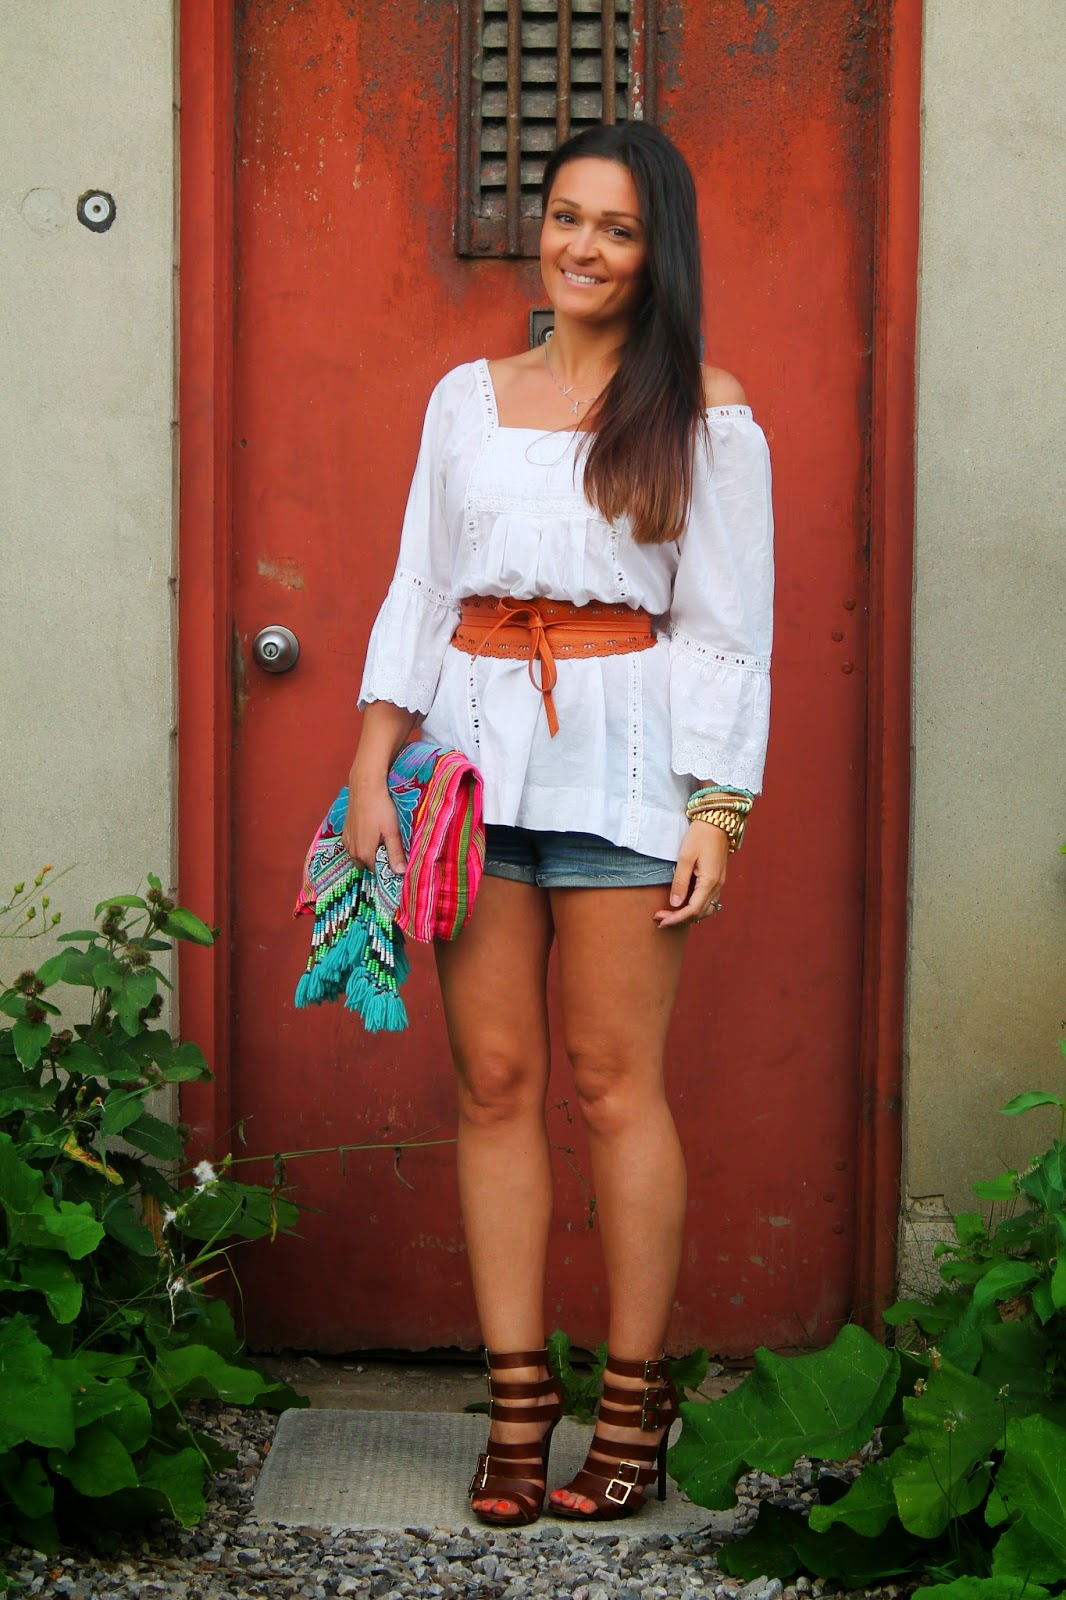 White top, white pheasant top, Boho outfit, embroidered clutch, canadian fashion blogger, blogerke, summer outfit, letnji outfit